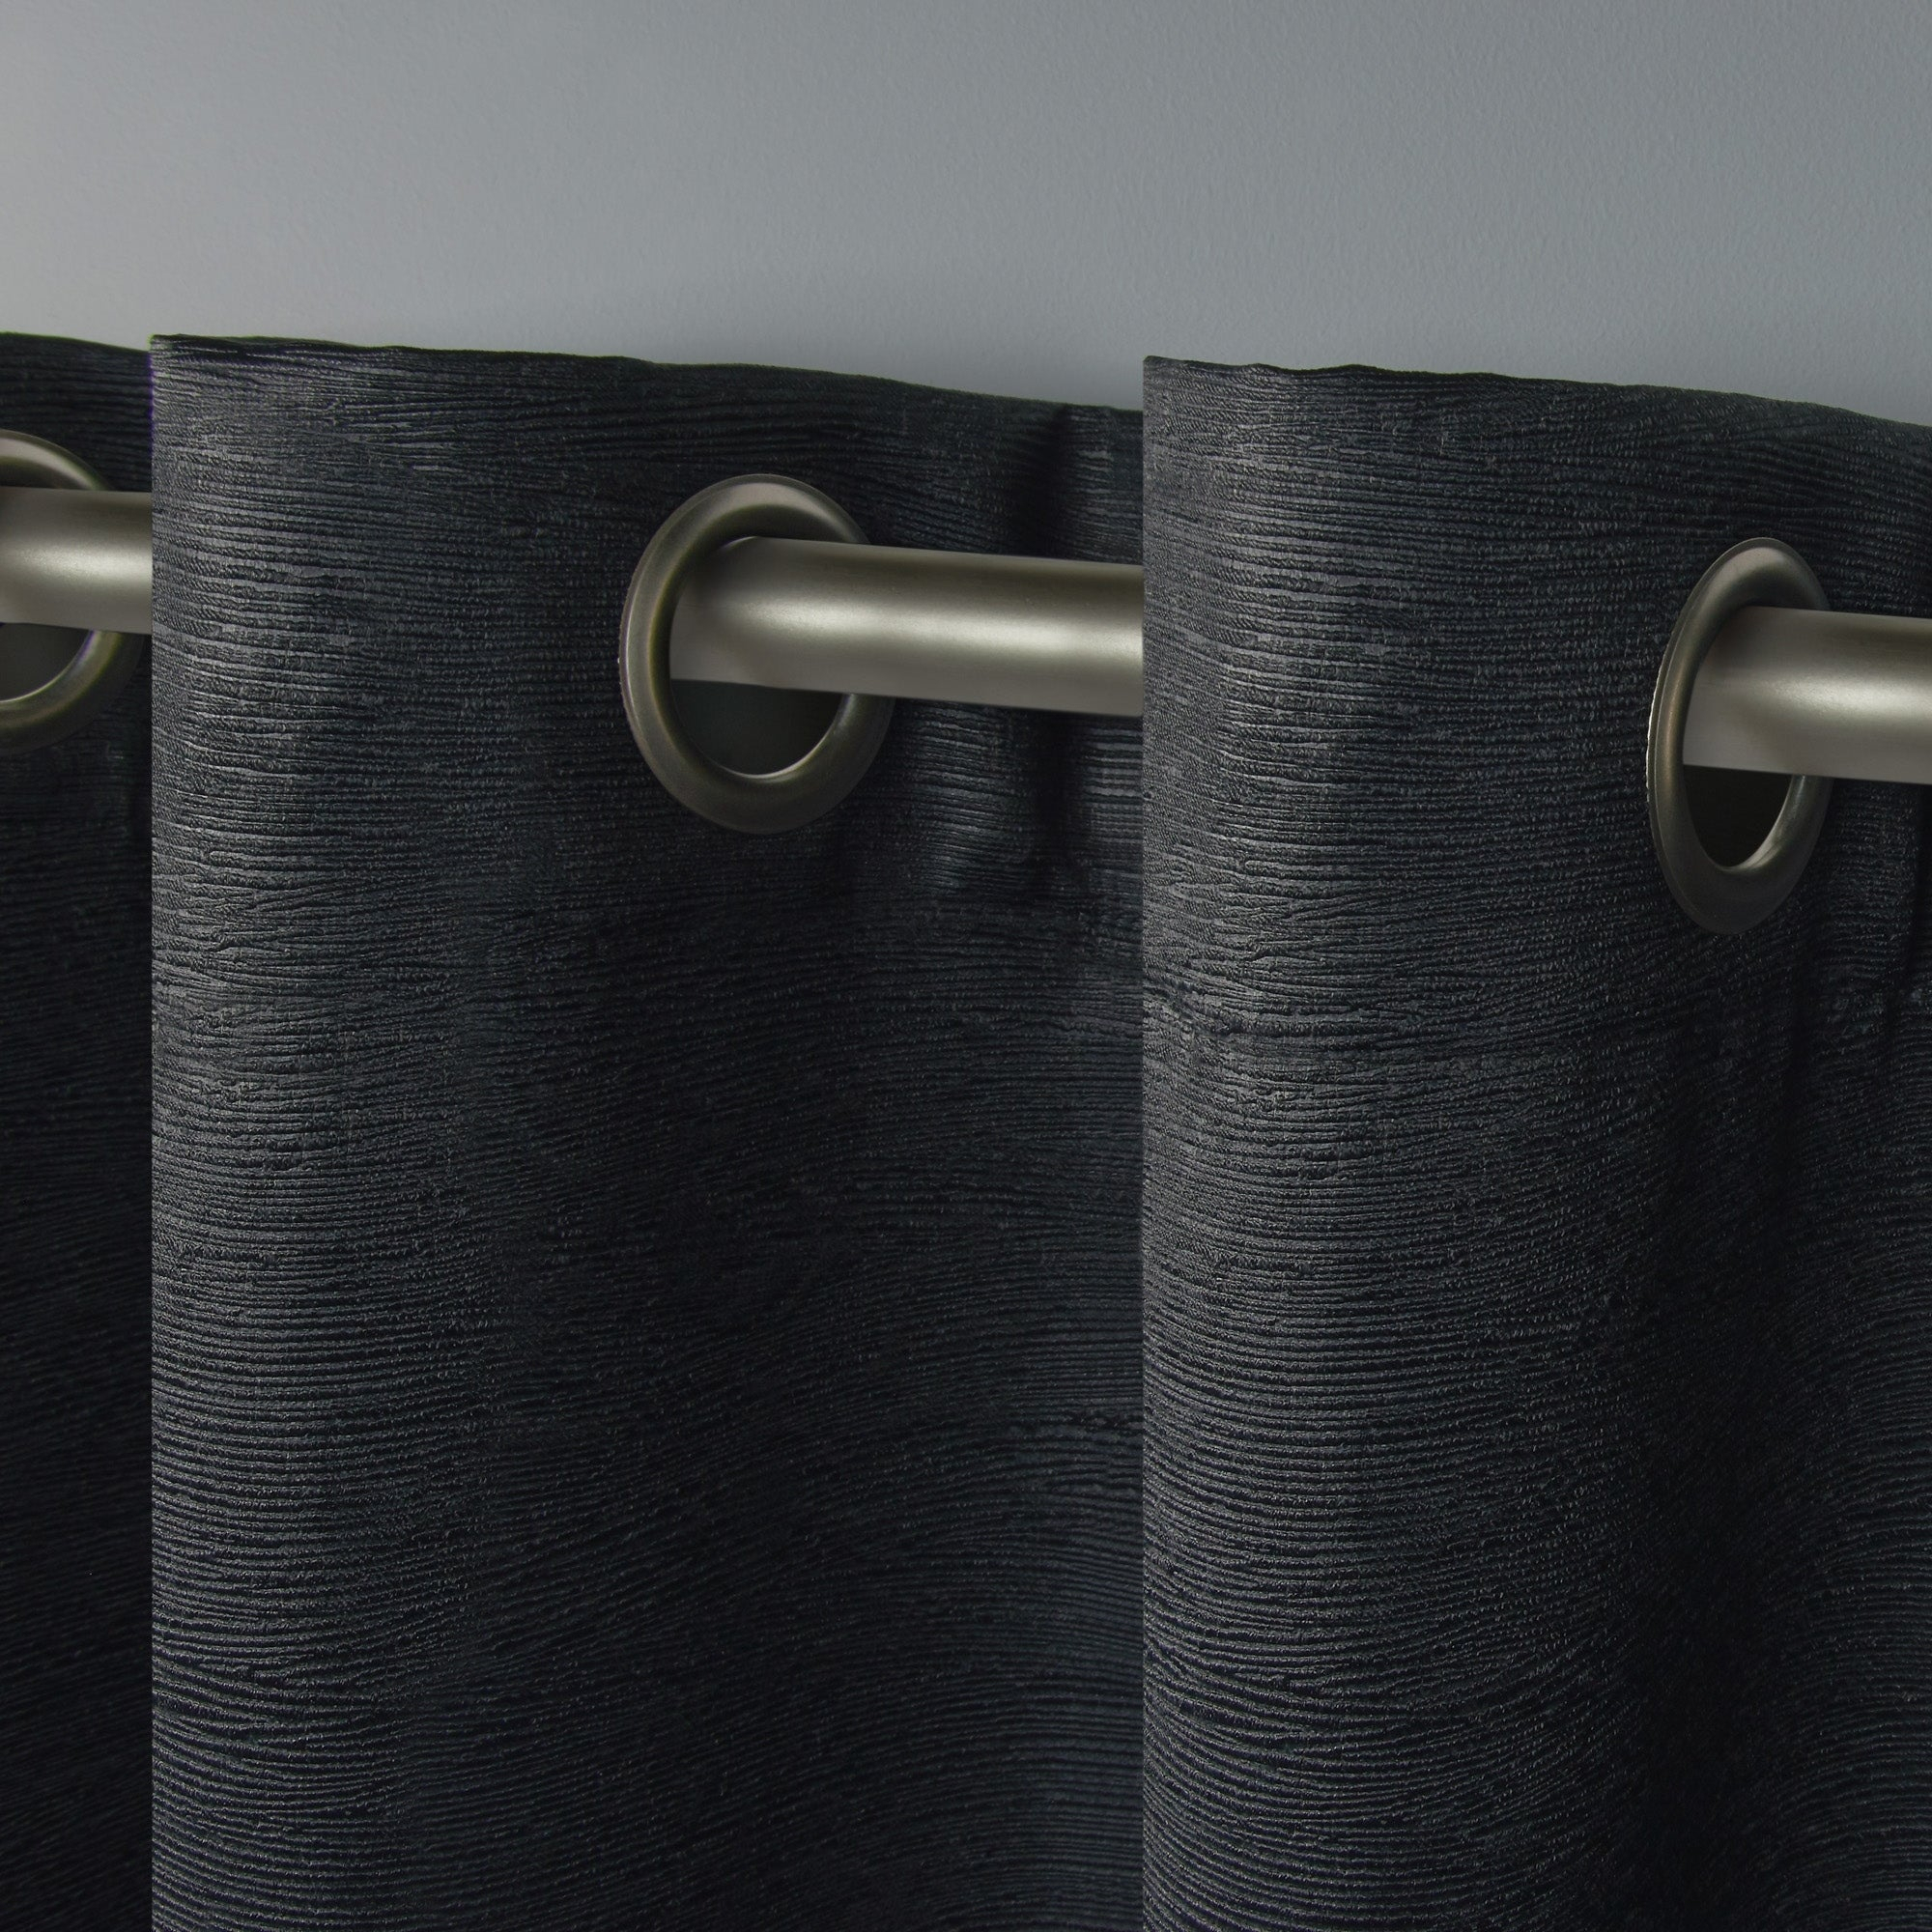 Ati Home Oxford Sateen Woven Blackout Grommet Top Curtain Panel Pair Intended For Oxford Sateen Woven Blackout Grommet Top Curtain Panel Pairs (View 5 of 20)